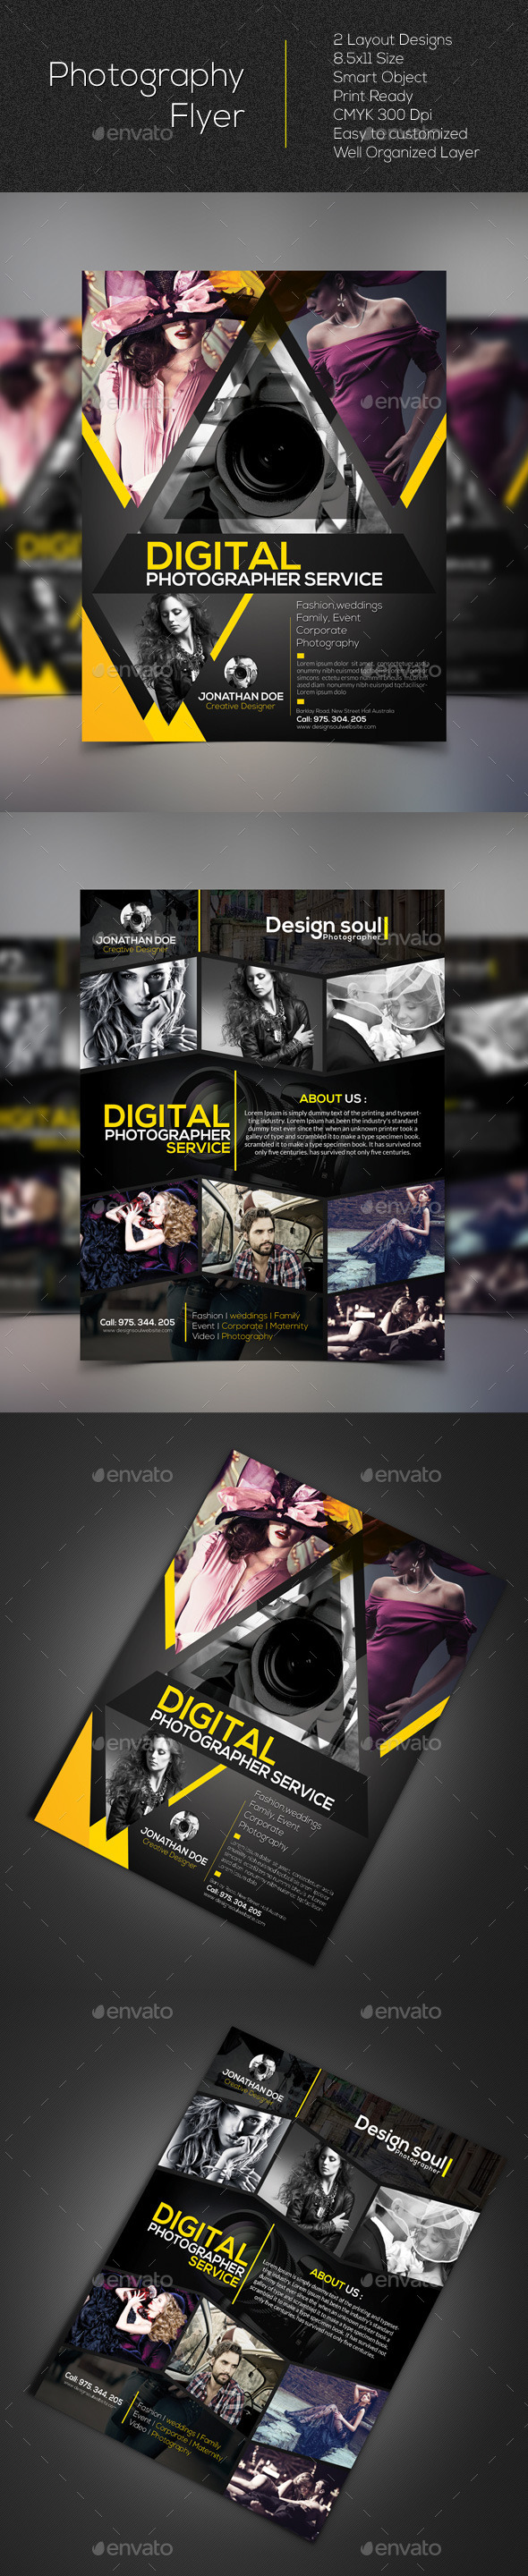 GraphicRiver Photography Flyer 10593503